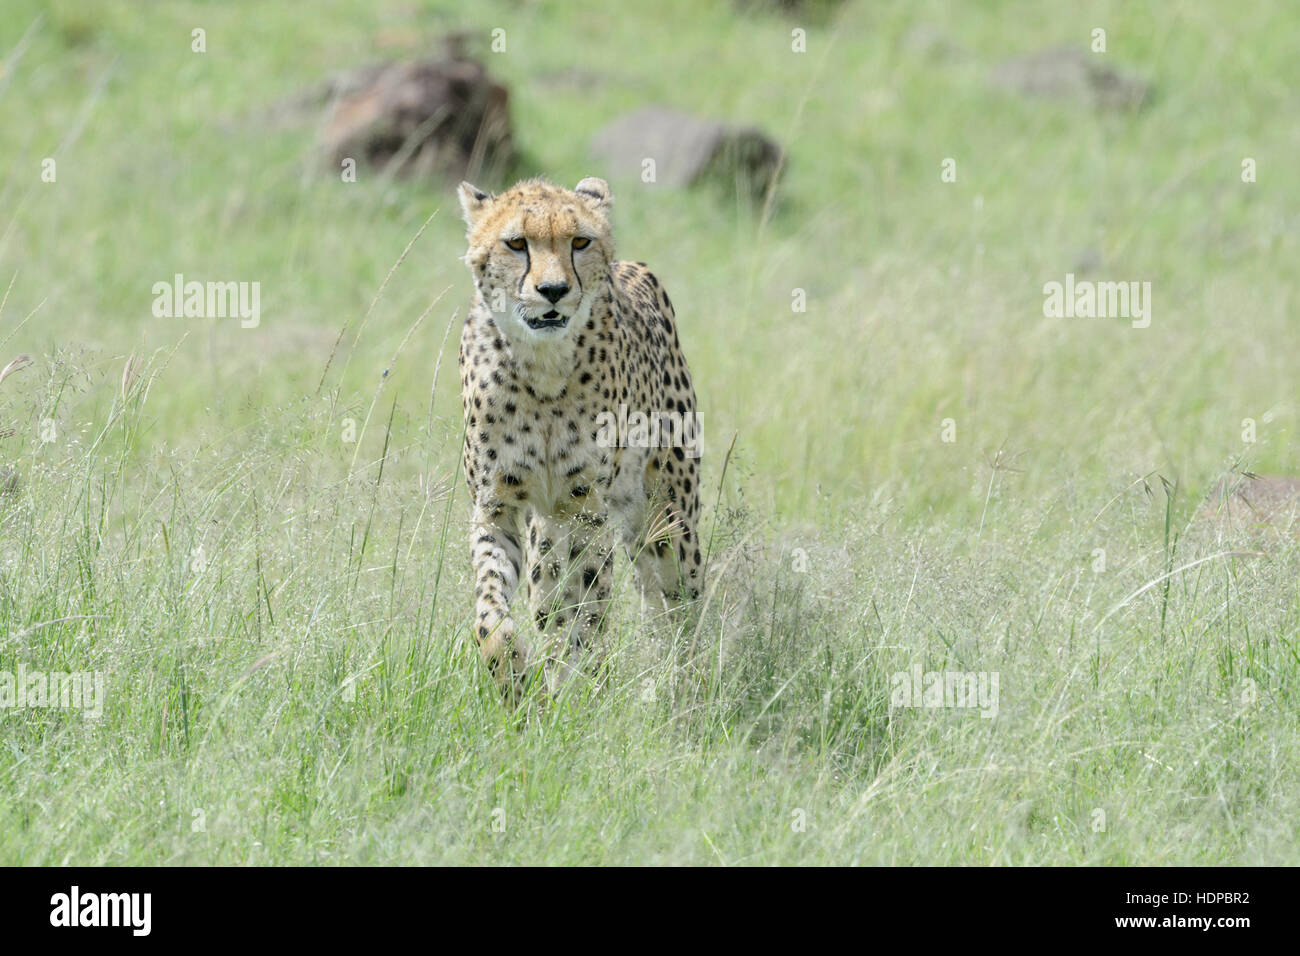 Cheetah (Acinonix jubatus) walking on savanna, Maasai Mara National Reserve, Kenya - Stock Image